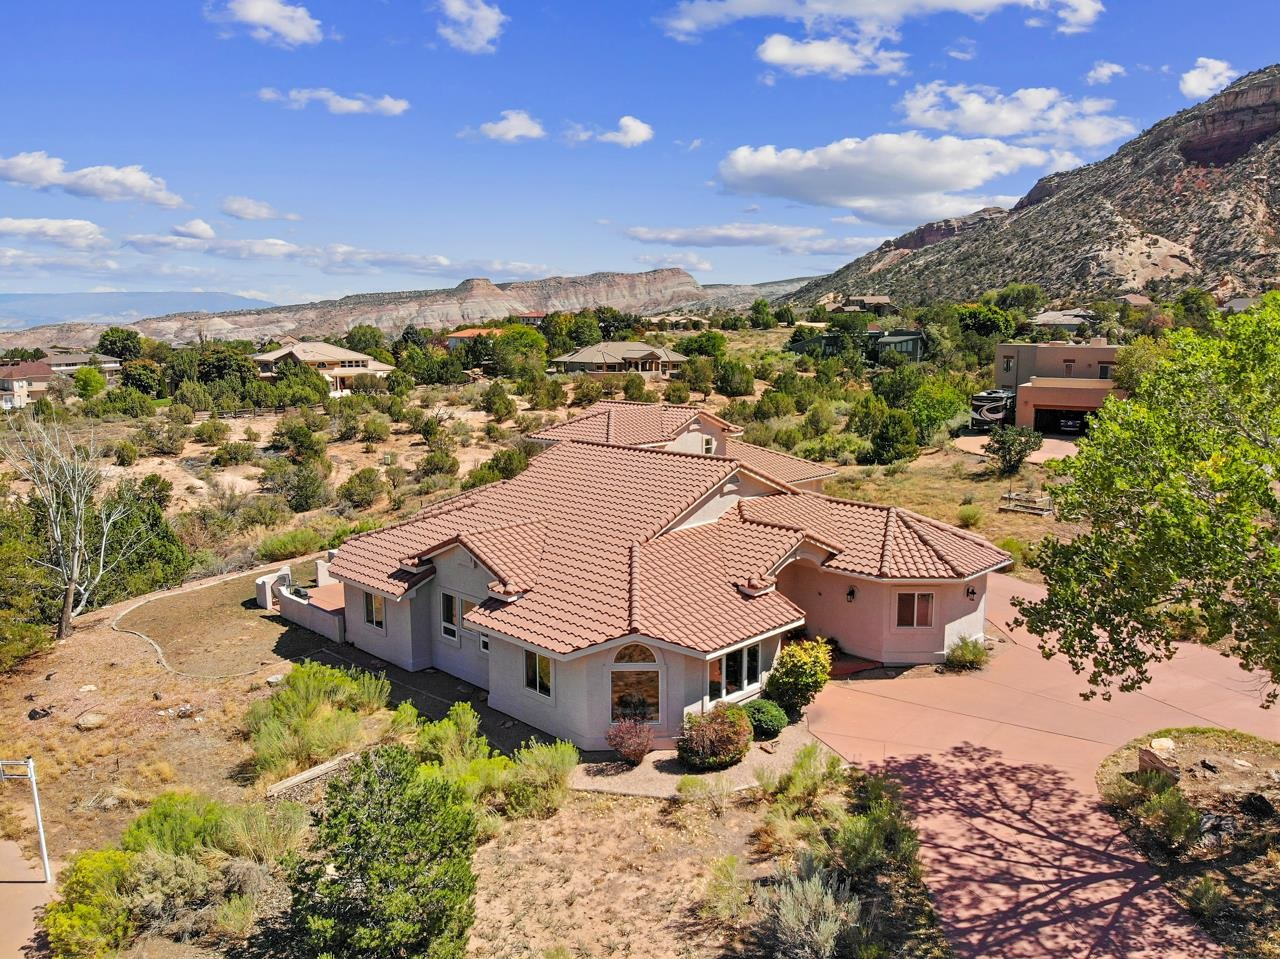 Architectural & natural beauty merge in this wonderful Western Colorado home. Nestled in at the base of the Colorado National Monument, the spacious layout offers 360 degree views of not only the red rocks & desert canyons just steps away, but also across the valley to the Bookcliffs & Grand Mesa. Inside you'll find peace, quiet & privacy as the floor plan allows for clearly defined places that flow gracefully into one another. With two generously sized living spaces, a formal dining room & open kitchen, entertaining is easy. The office offers both storage & a built-in safe. The master is a true retreat set away from the main living space. Upstairs is a mother-in-law suite with a balcony all its own. The oversized 3-car garage is impressive & the back patio with putting green offers the best valley views. Don't miss out on this Grand Junction wonder!